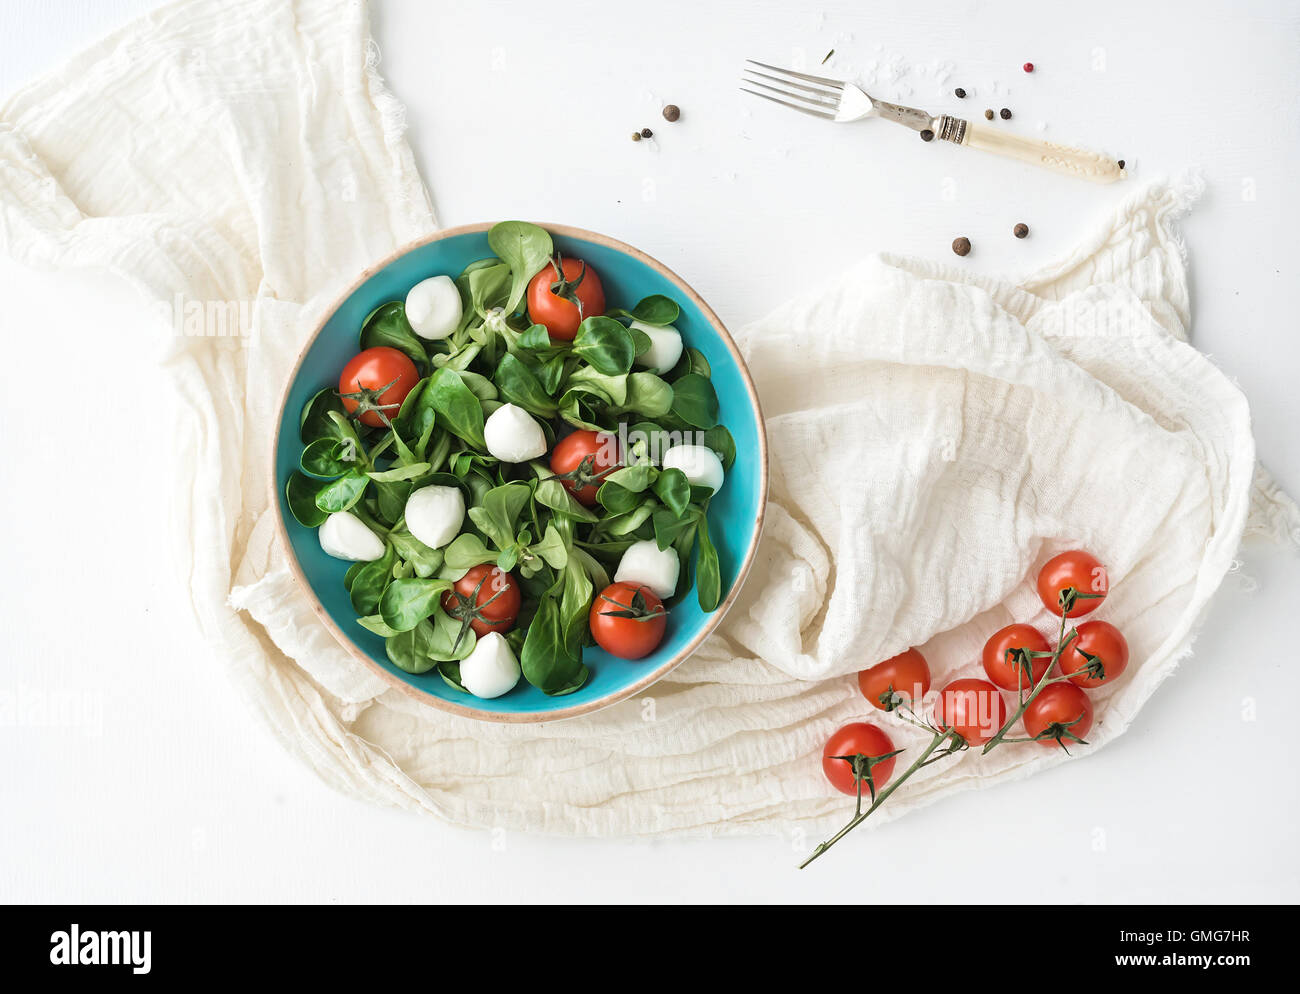 Spring salad with lamb's lettuce, mozzarella and cherry-tomatoes - Stock Image